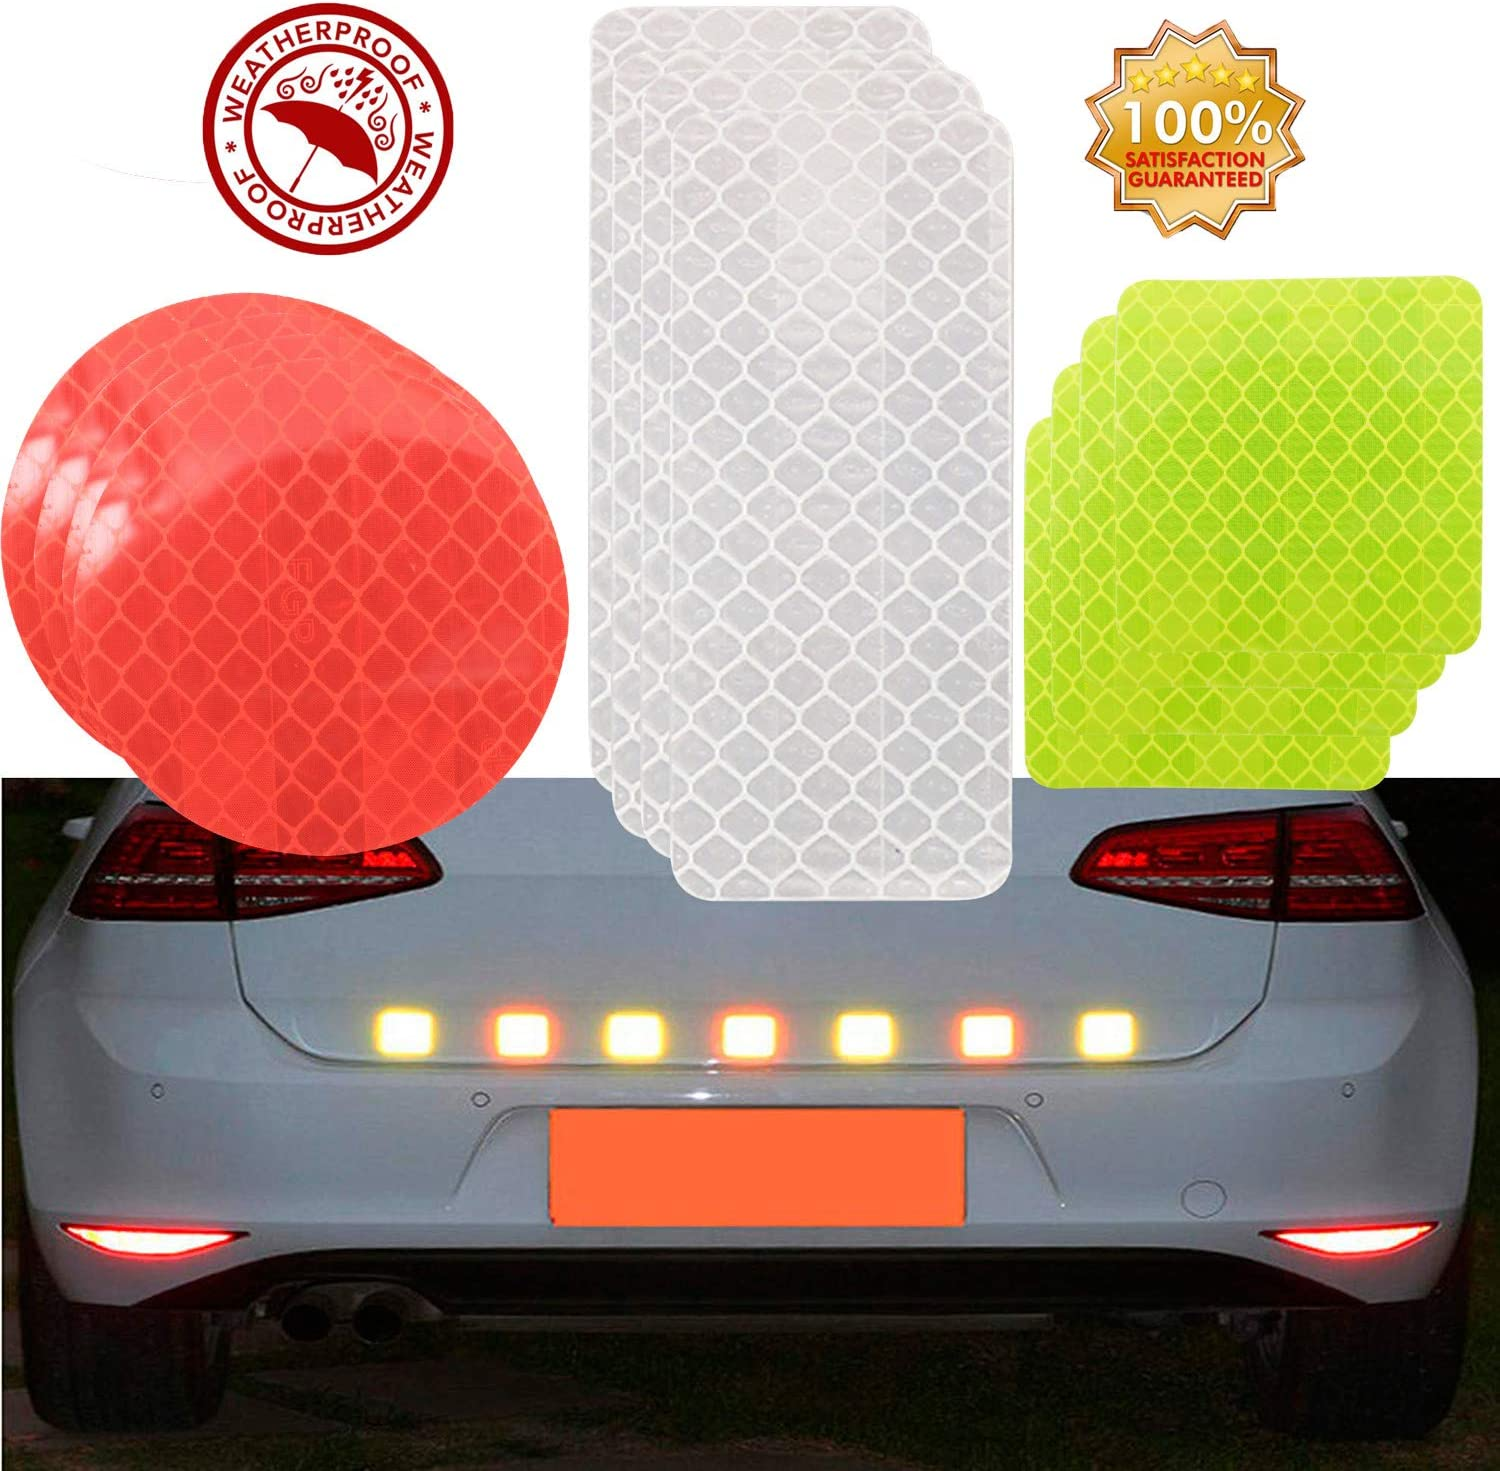 Racing Car Badge Toys Truck Scooter Reflective Stickers 21PCS Waterproof Adhesive Decals for Motorcycle Helmets Strollers Bicycles Wheelchairs Night Visibility Safety Door Window Yellow